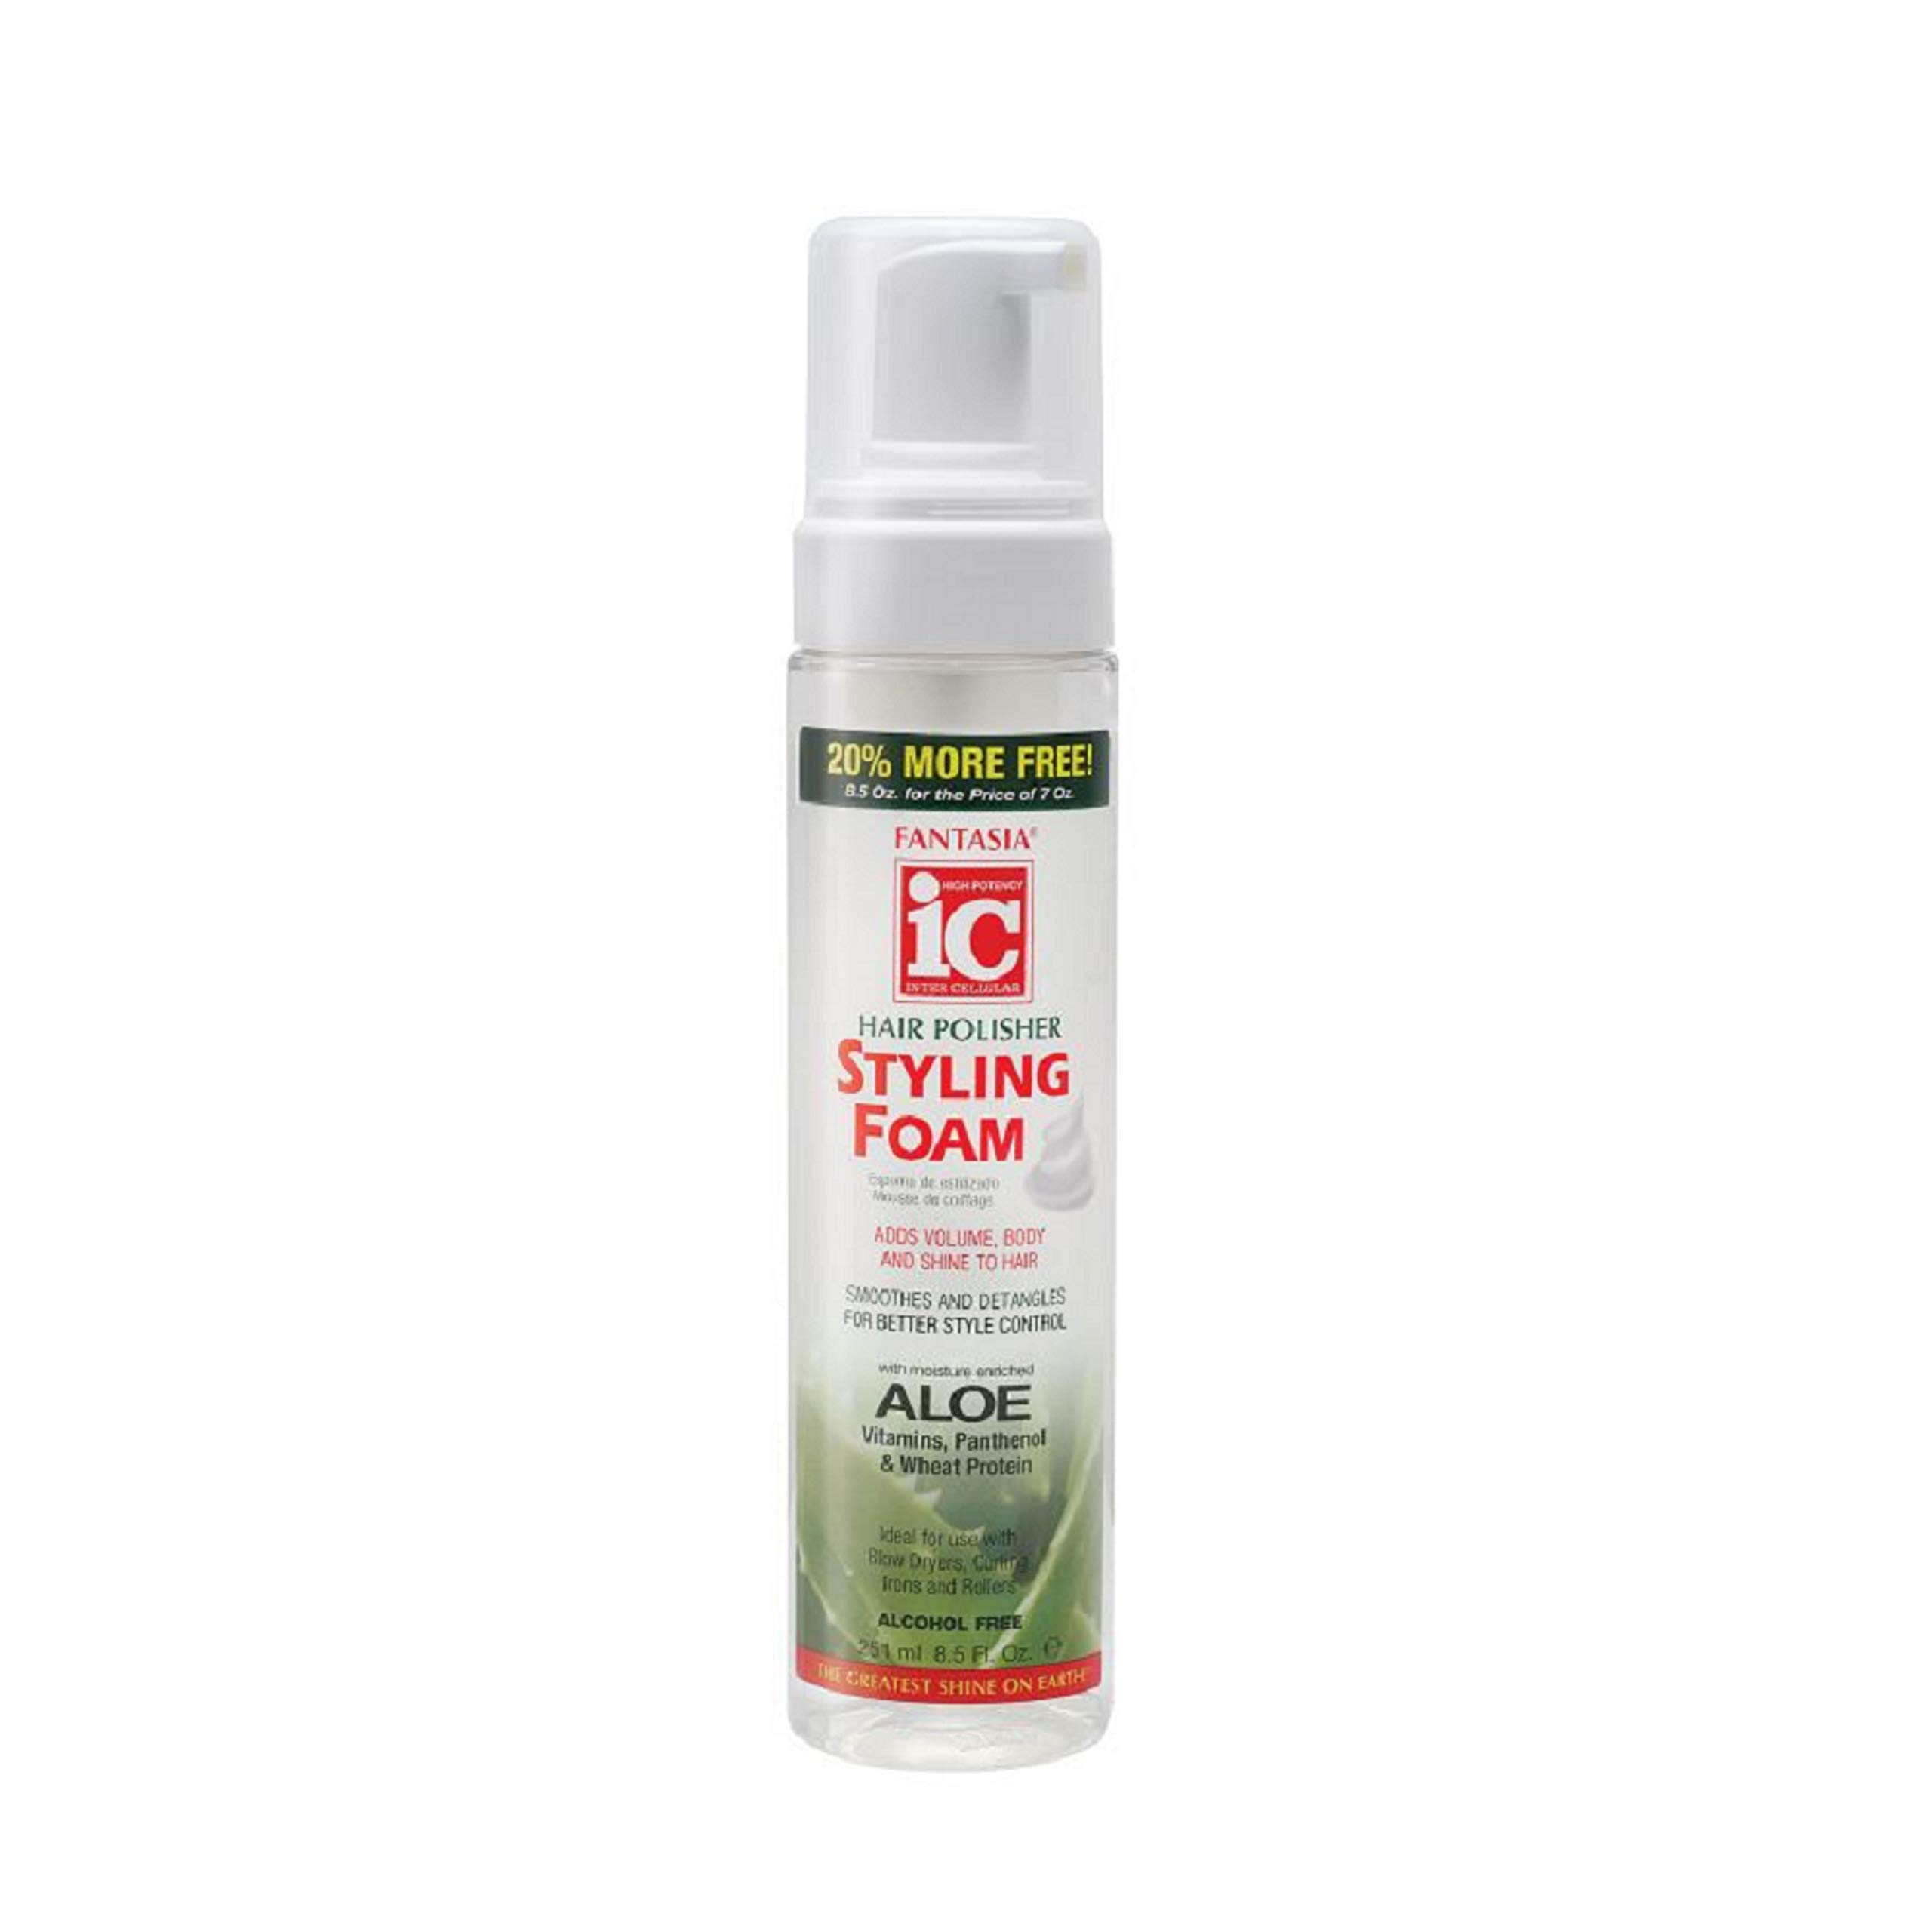 Fantasia Styling Foam 7 oz. + 1.5 oz. Free (3-Pack) with Free Nail File by Fantasia IC